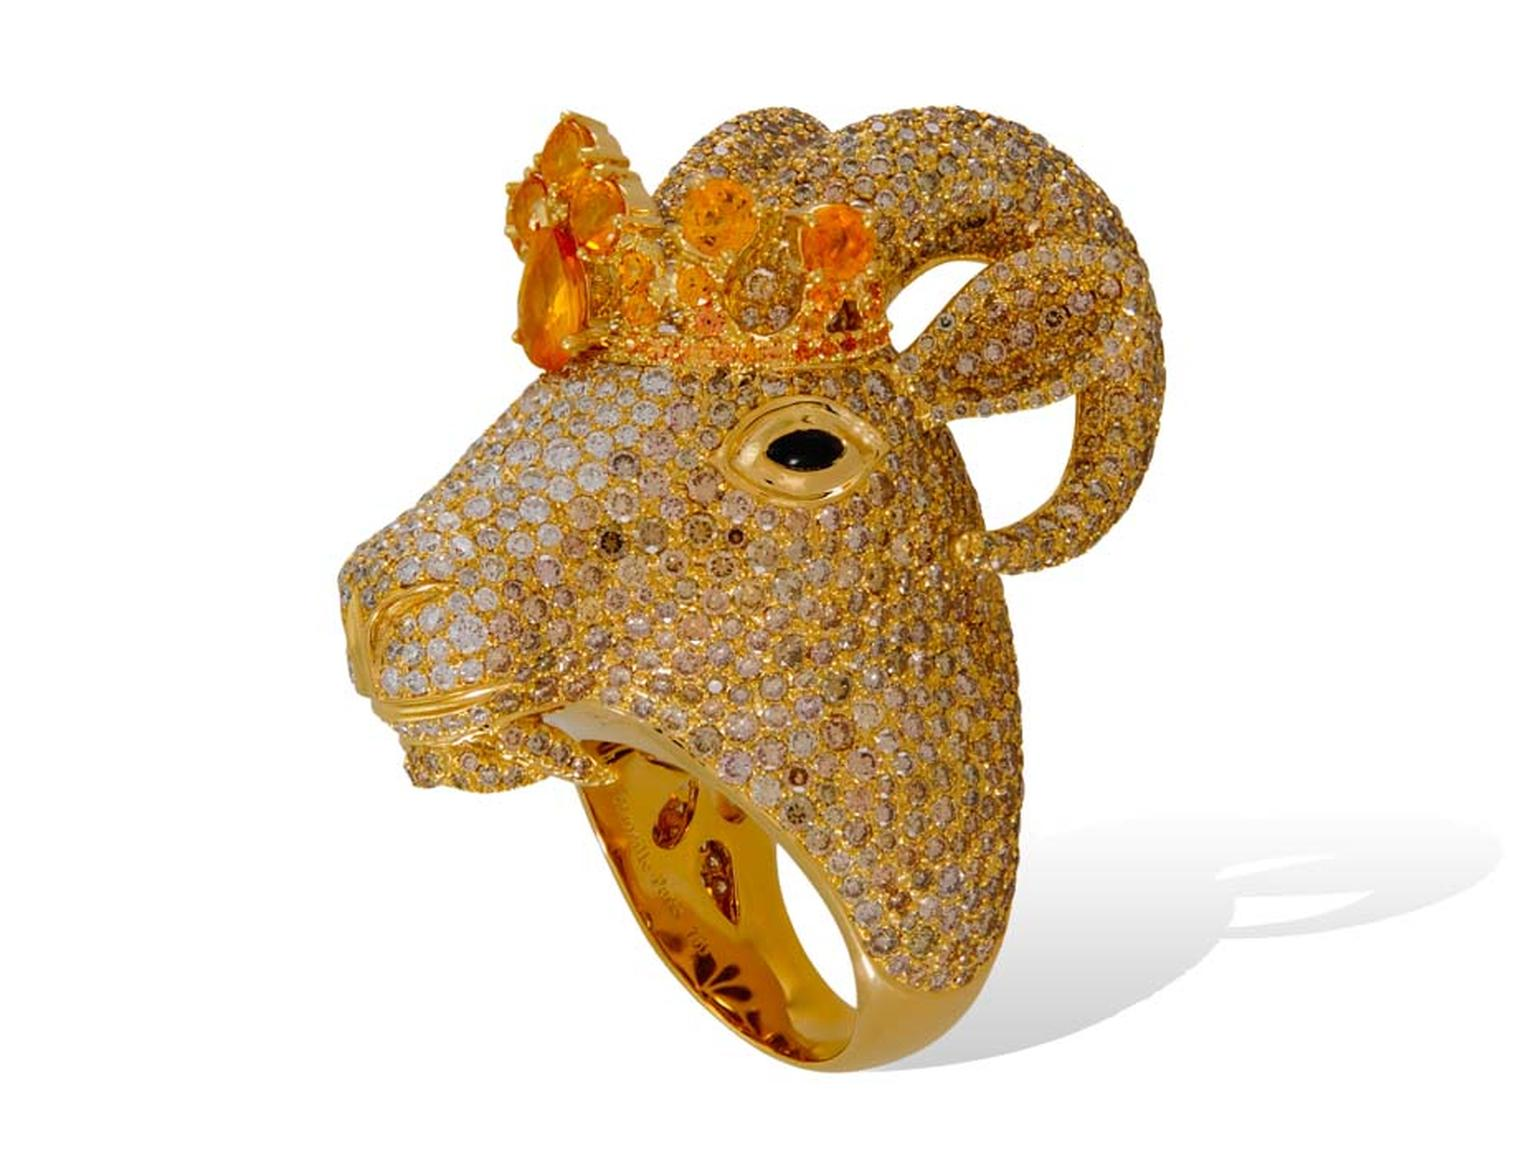 Lydia Courteille Goat ring in yellow gold from the Animal Farm collection, set with diamonds and sapphires